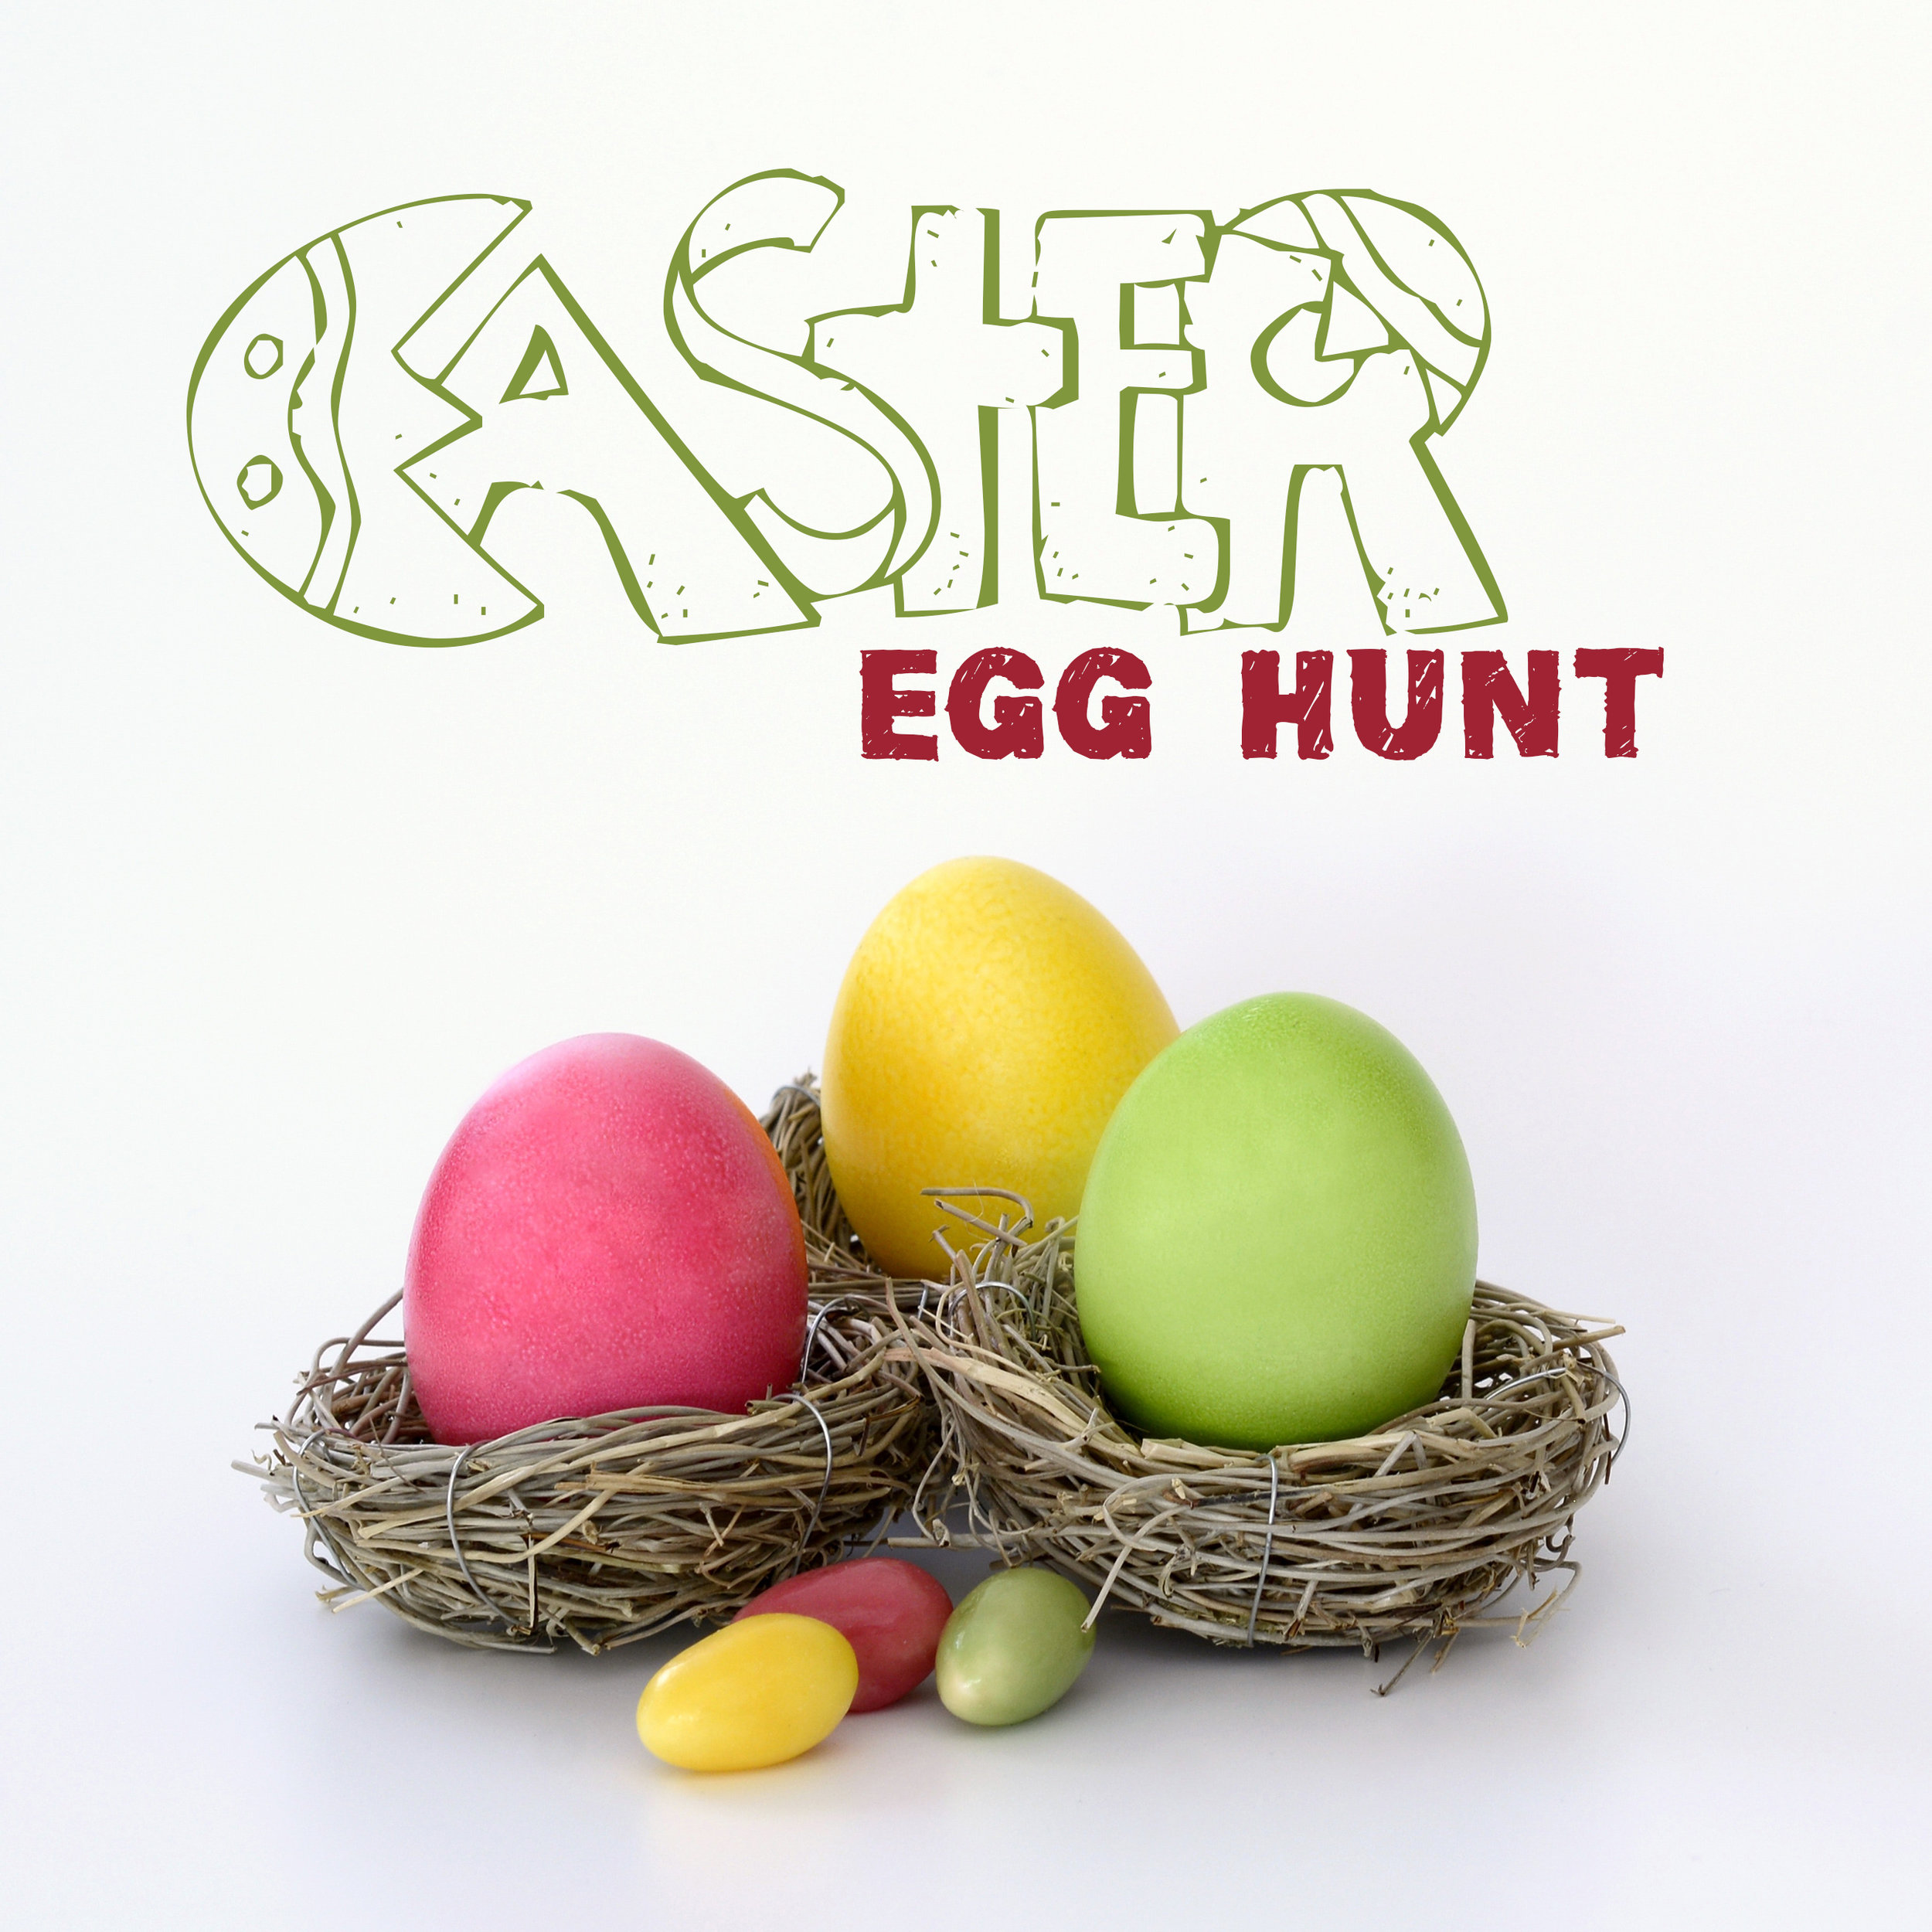 easter egg hunt sq.jpg